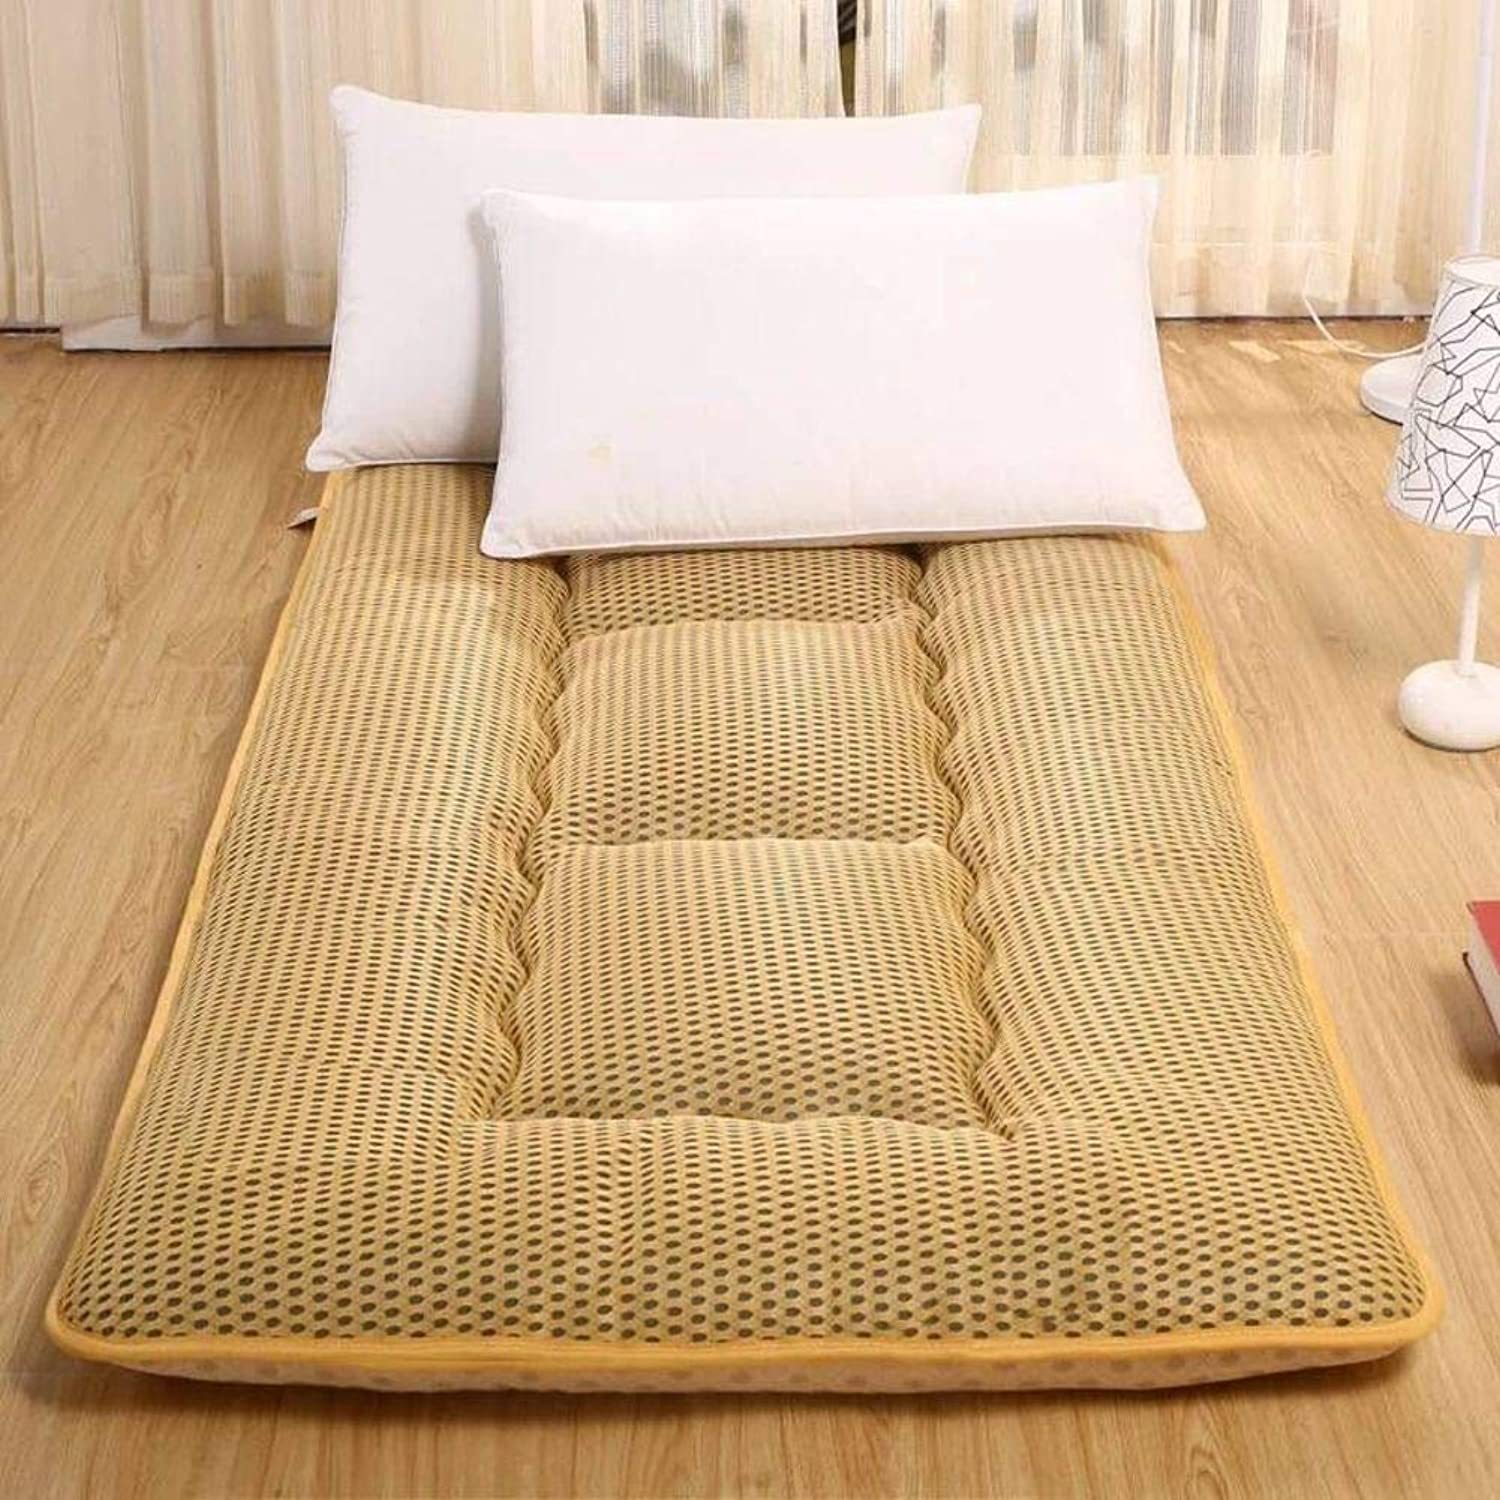 Breathablle Mesh Tatami Sleeping Floor Mattress Topper, Anti Slip Thicken Mattress mat Pad Roll up for Living Room Dorm-C 90x200cm(35x79inch)